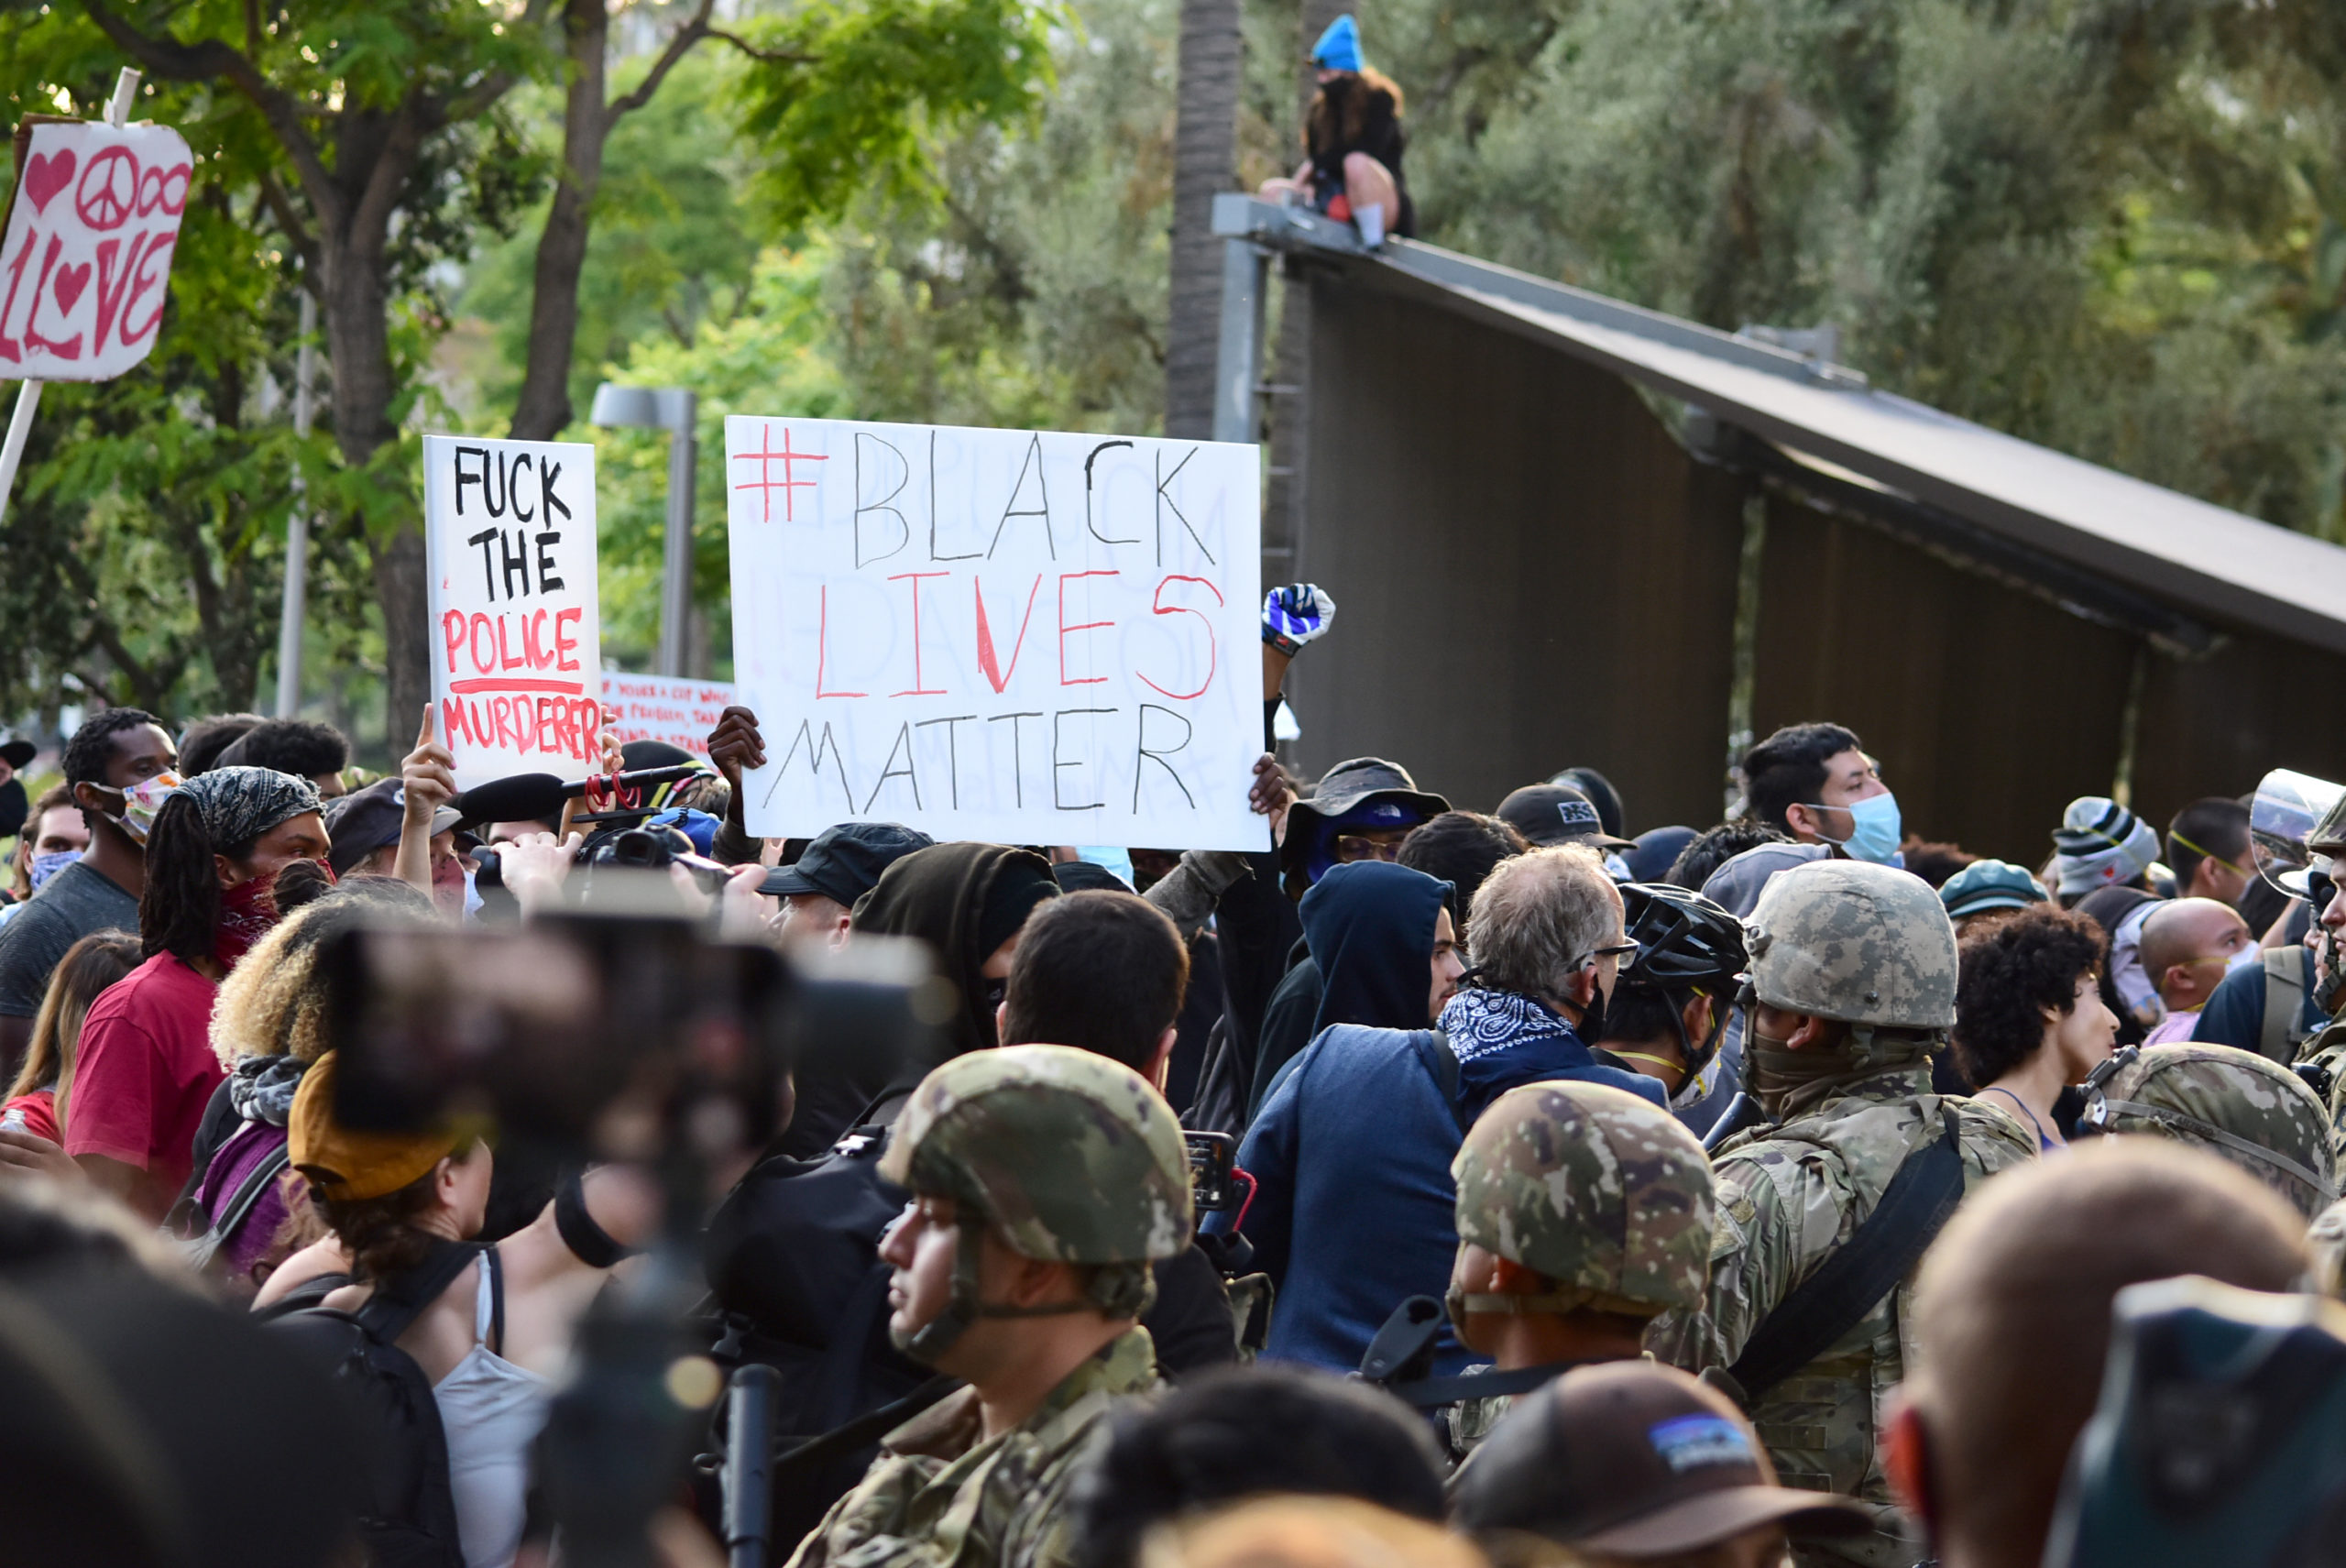 south-pasadena-news-05-31-2020-george-floyd-blm-black-lives-matter-protests-los-angeles-day-2-144